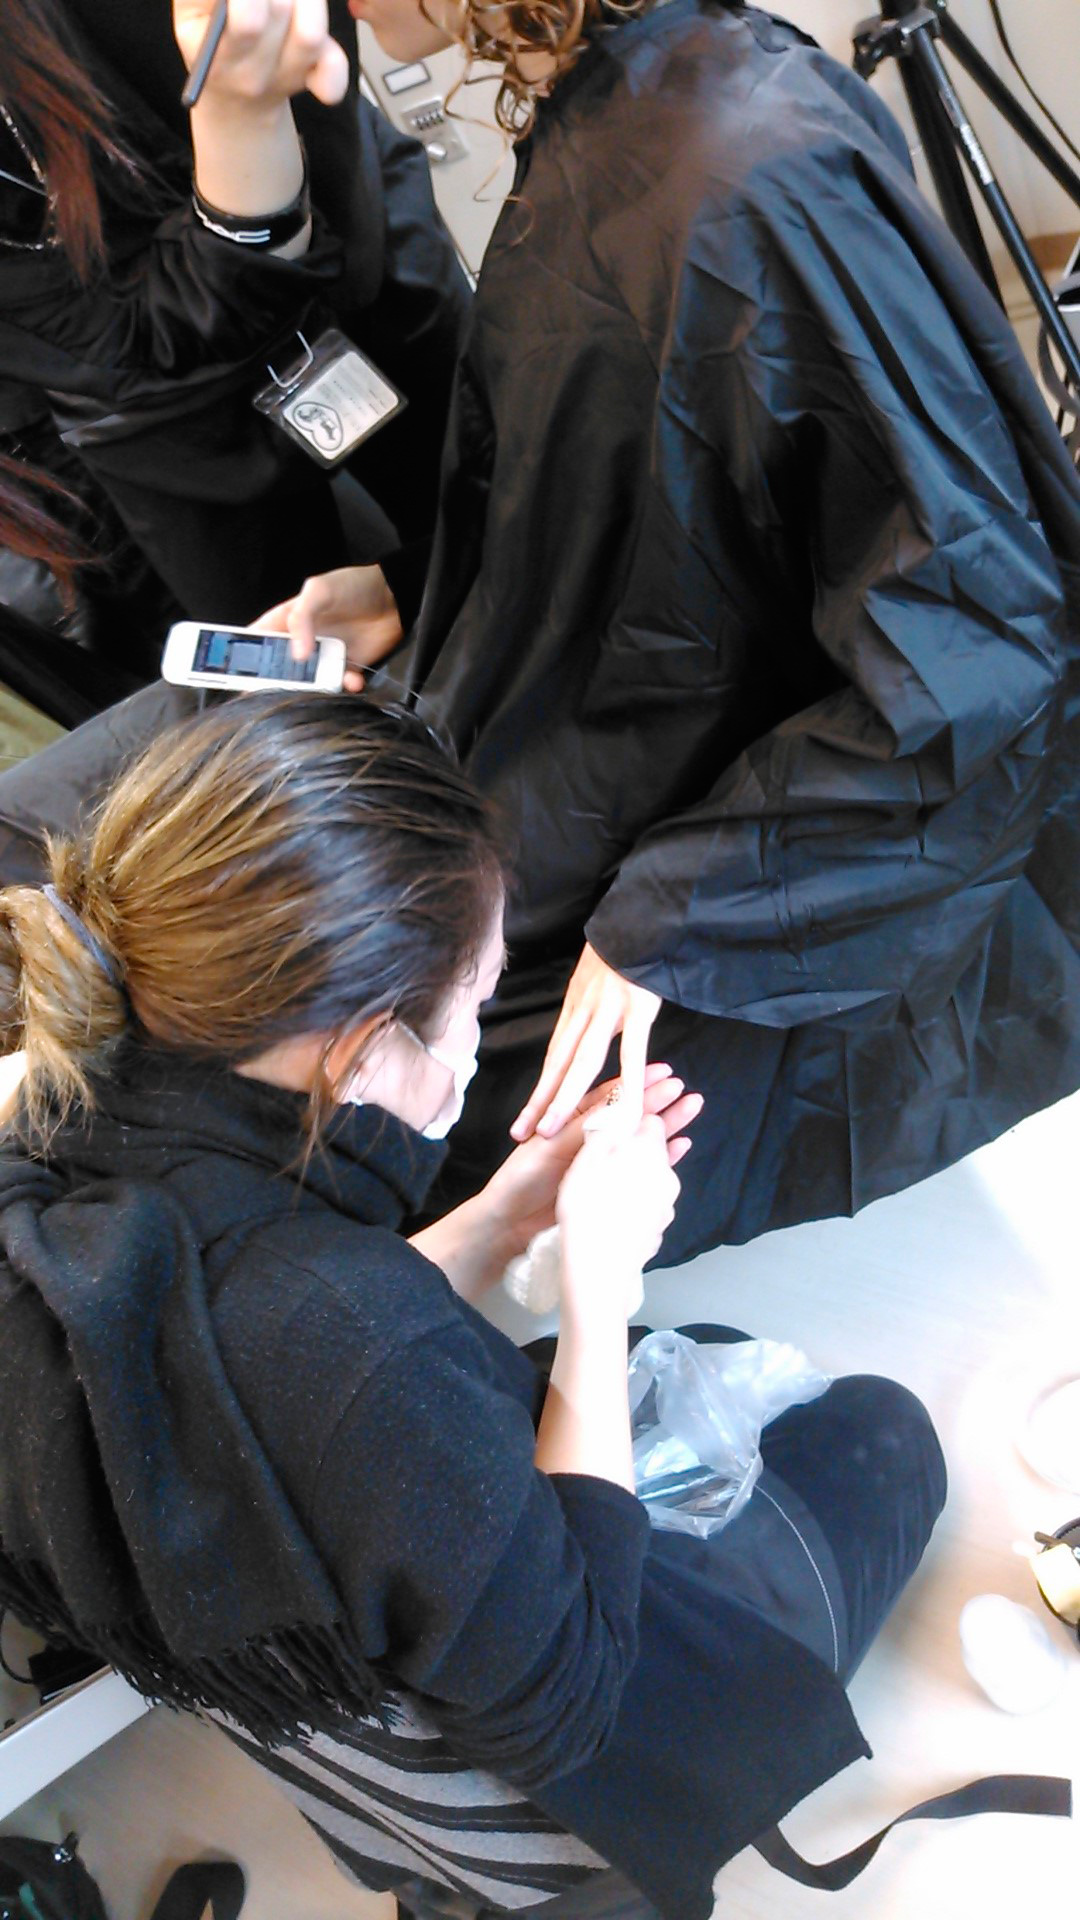 IN-PROCESS BY HALL OHARA AUTUMN WINTER 2014/15